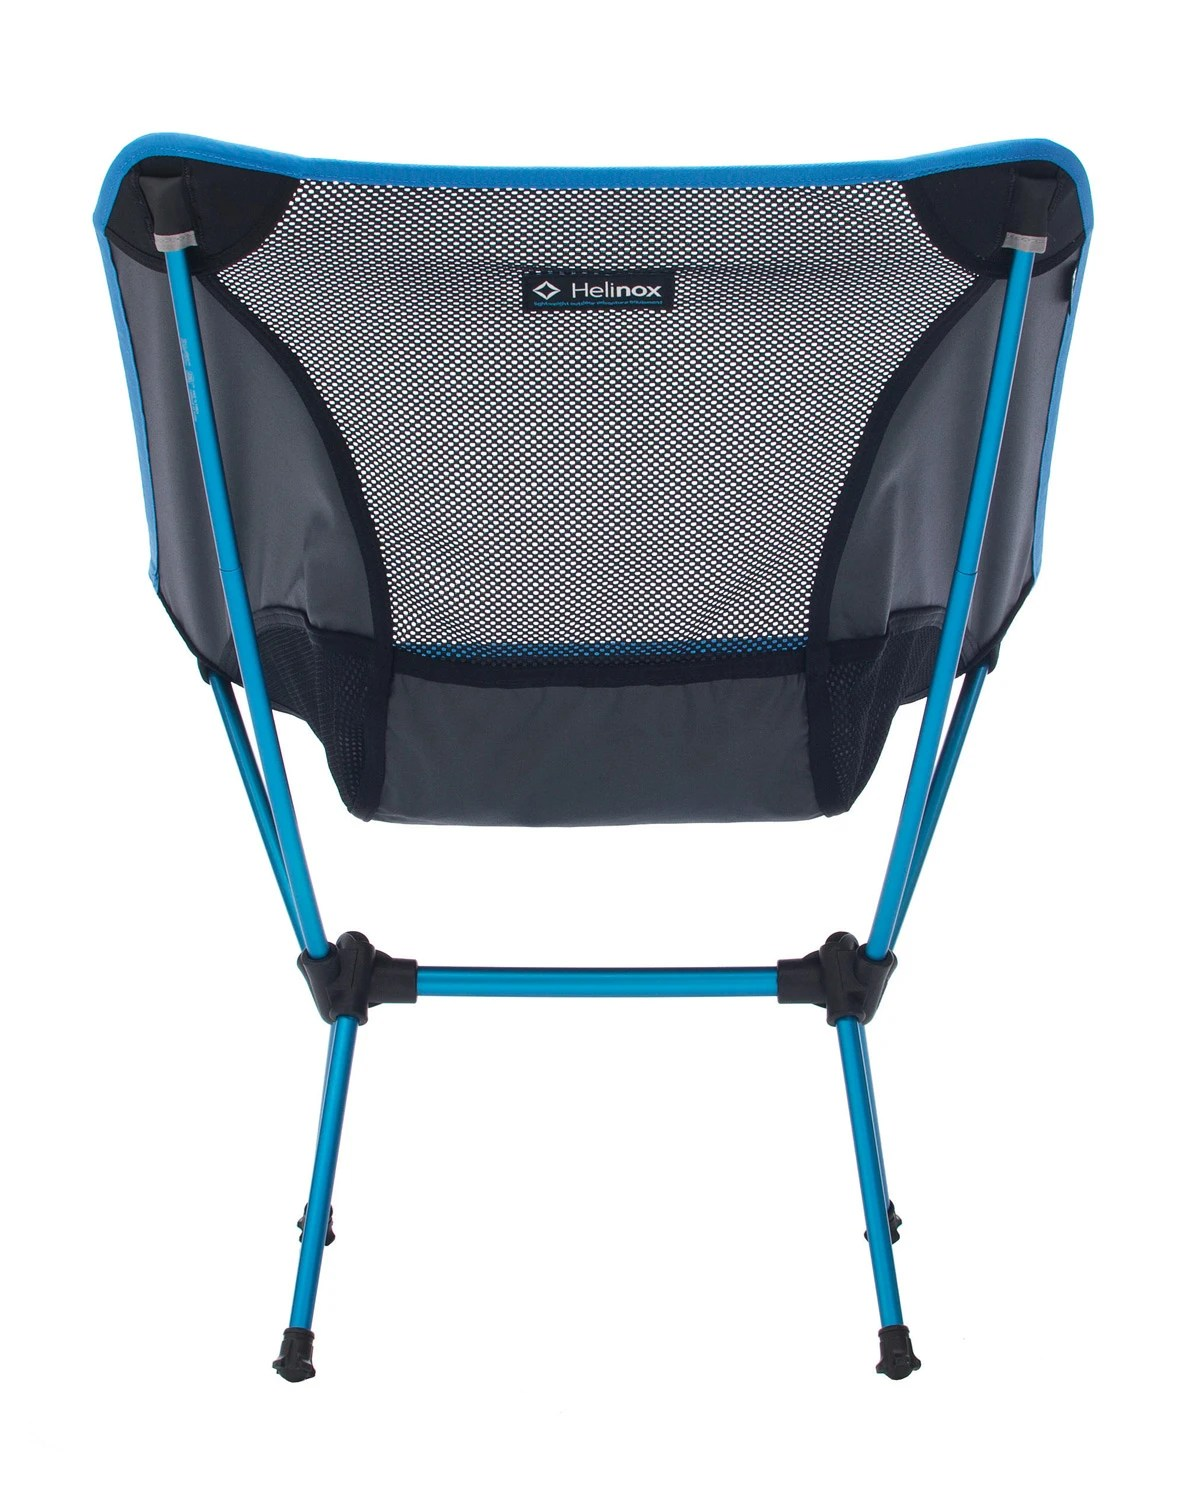 Camping Chairs Sale On Sale Helinox Chair One Camping Chair 2018